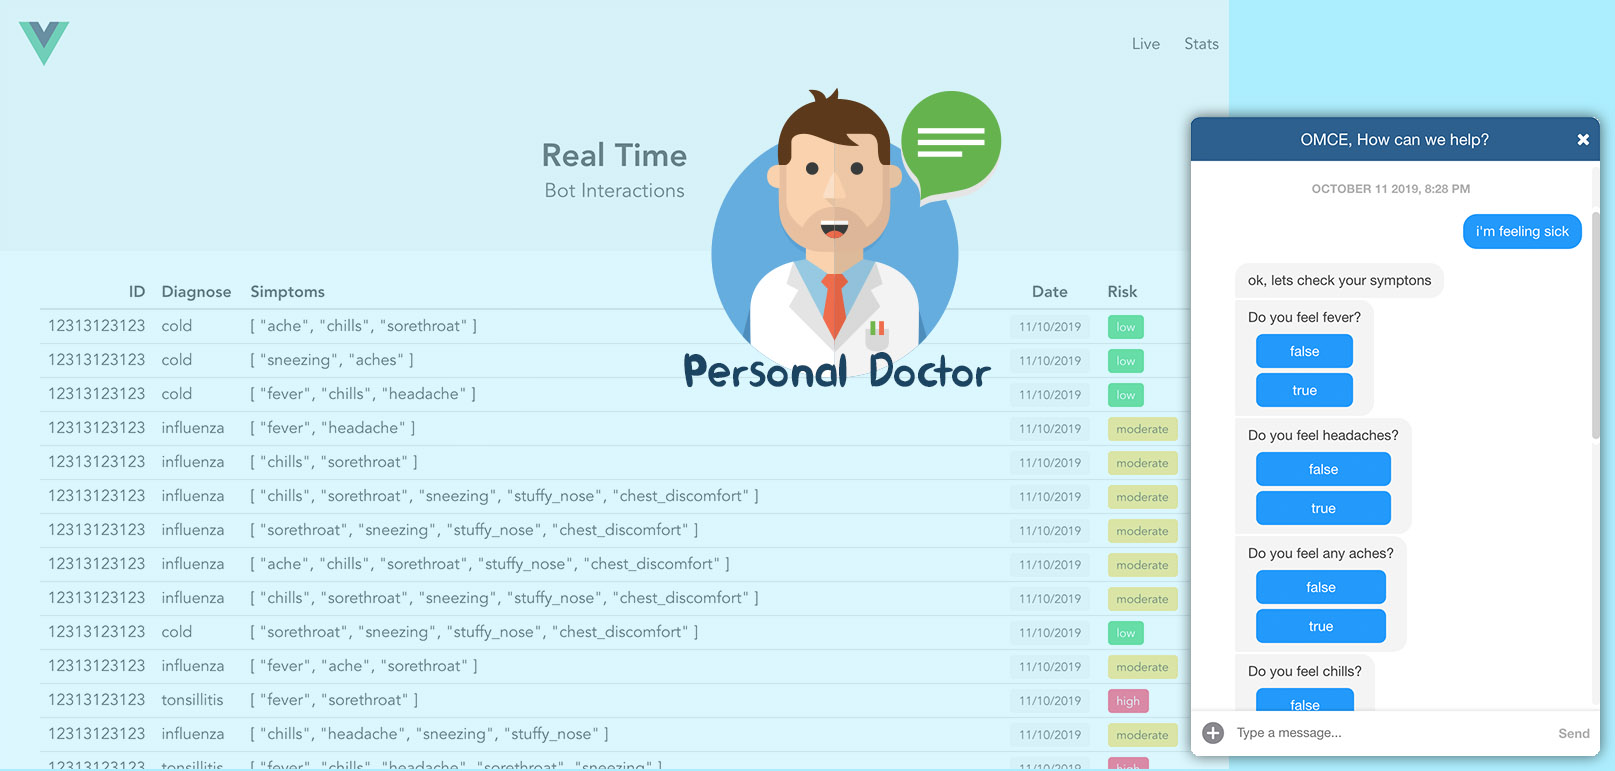 Personal Doctor